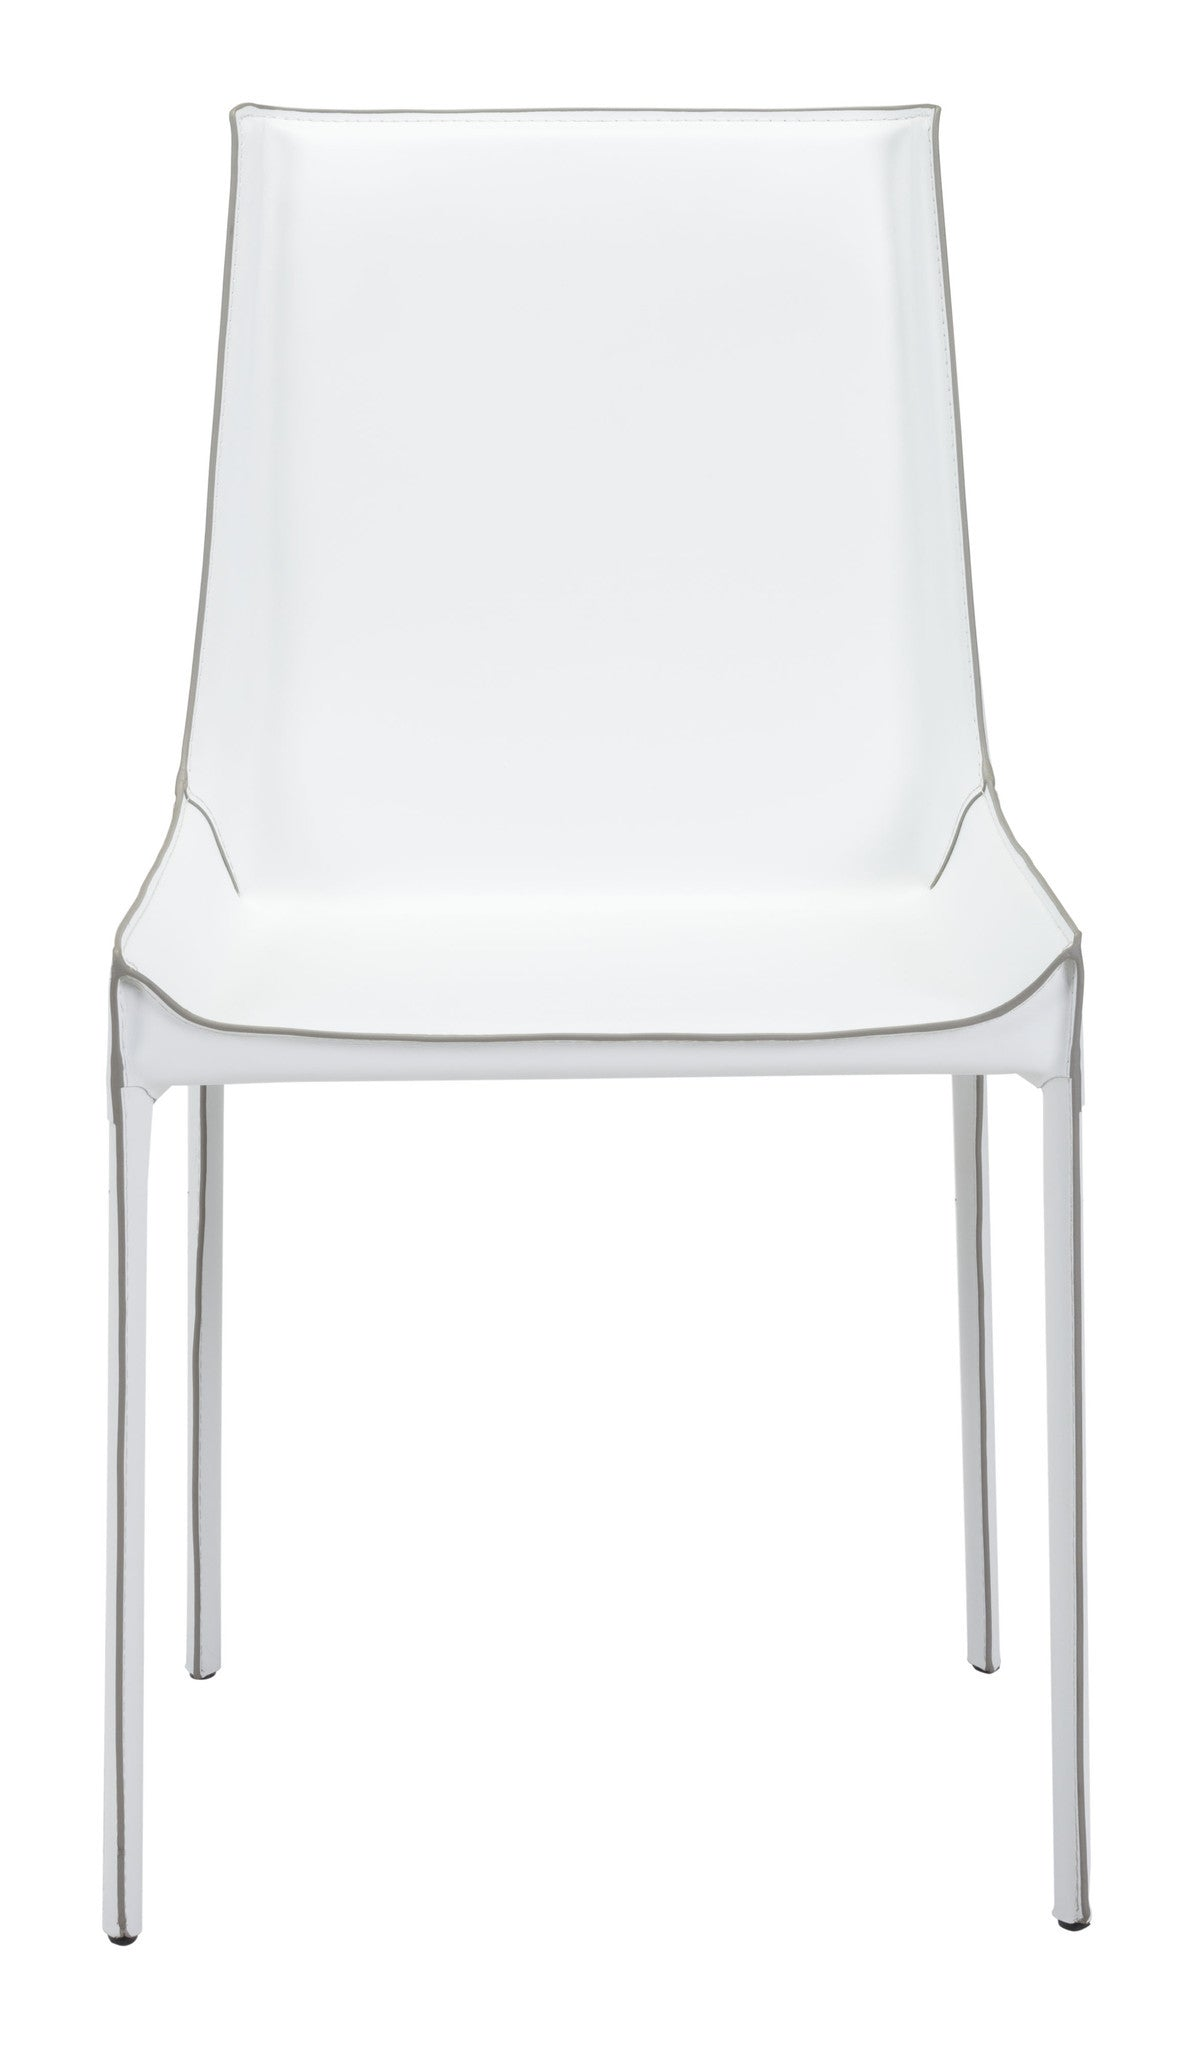 ... Fashion Dining Chair In White Recycled Leather With Exposed Seam (Set  Of 2)  ...